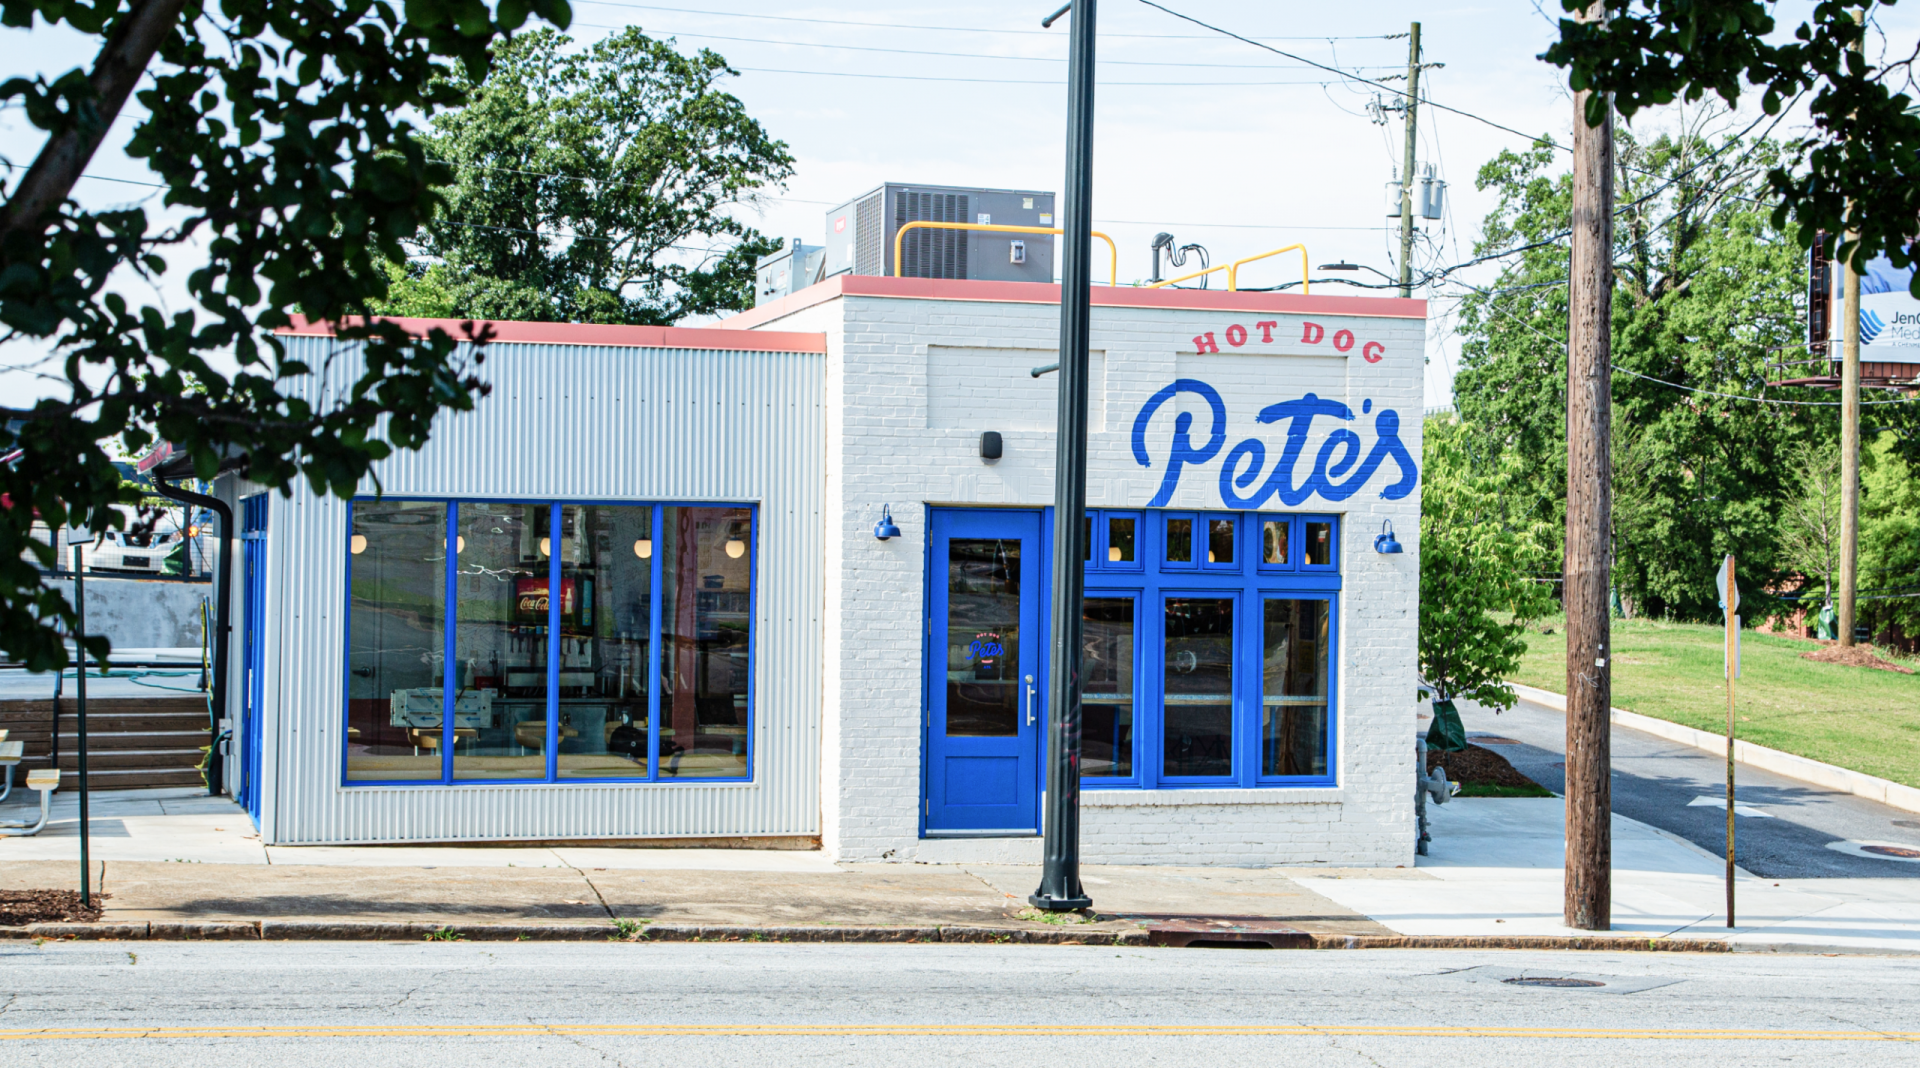 Hot Dog Pete's